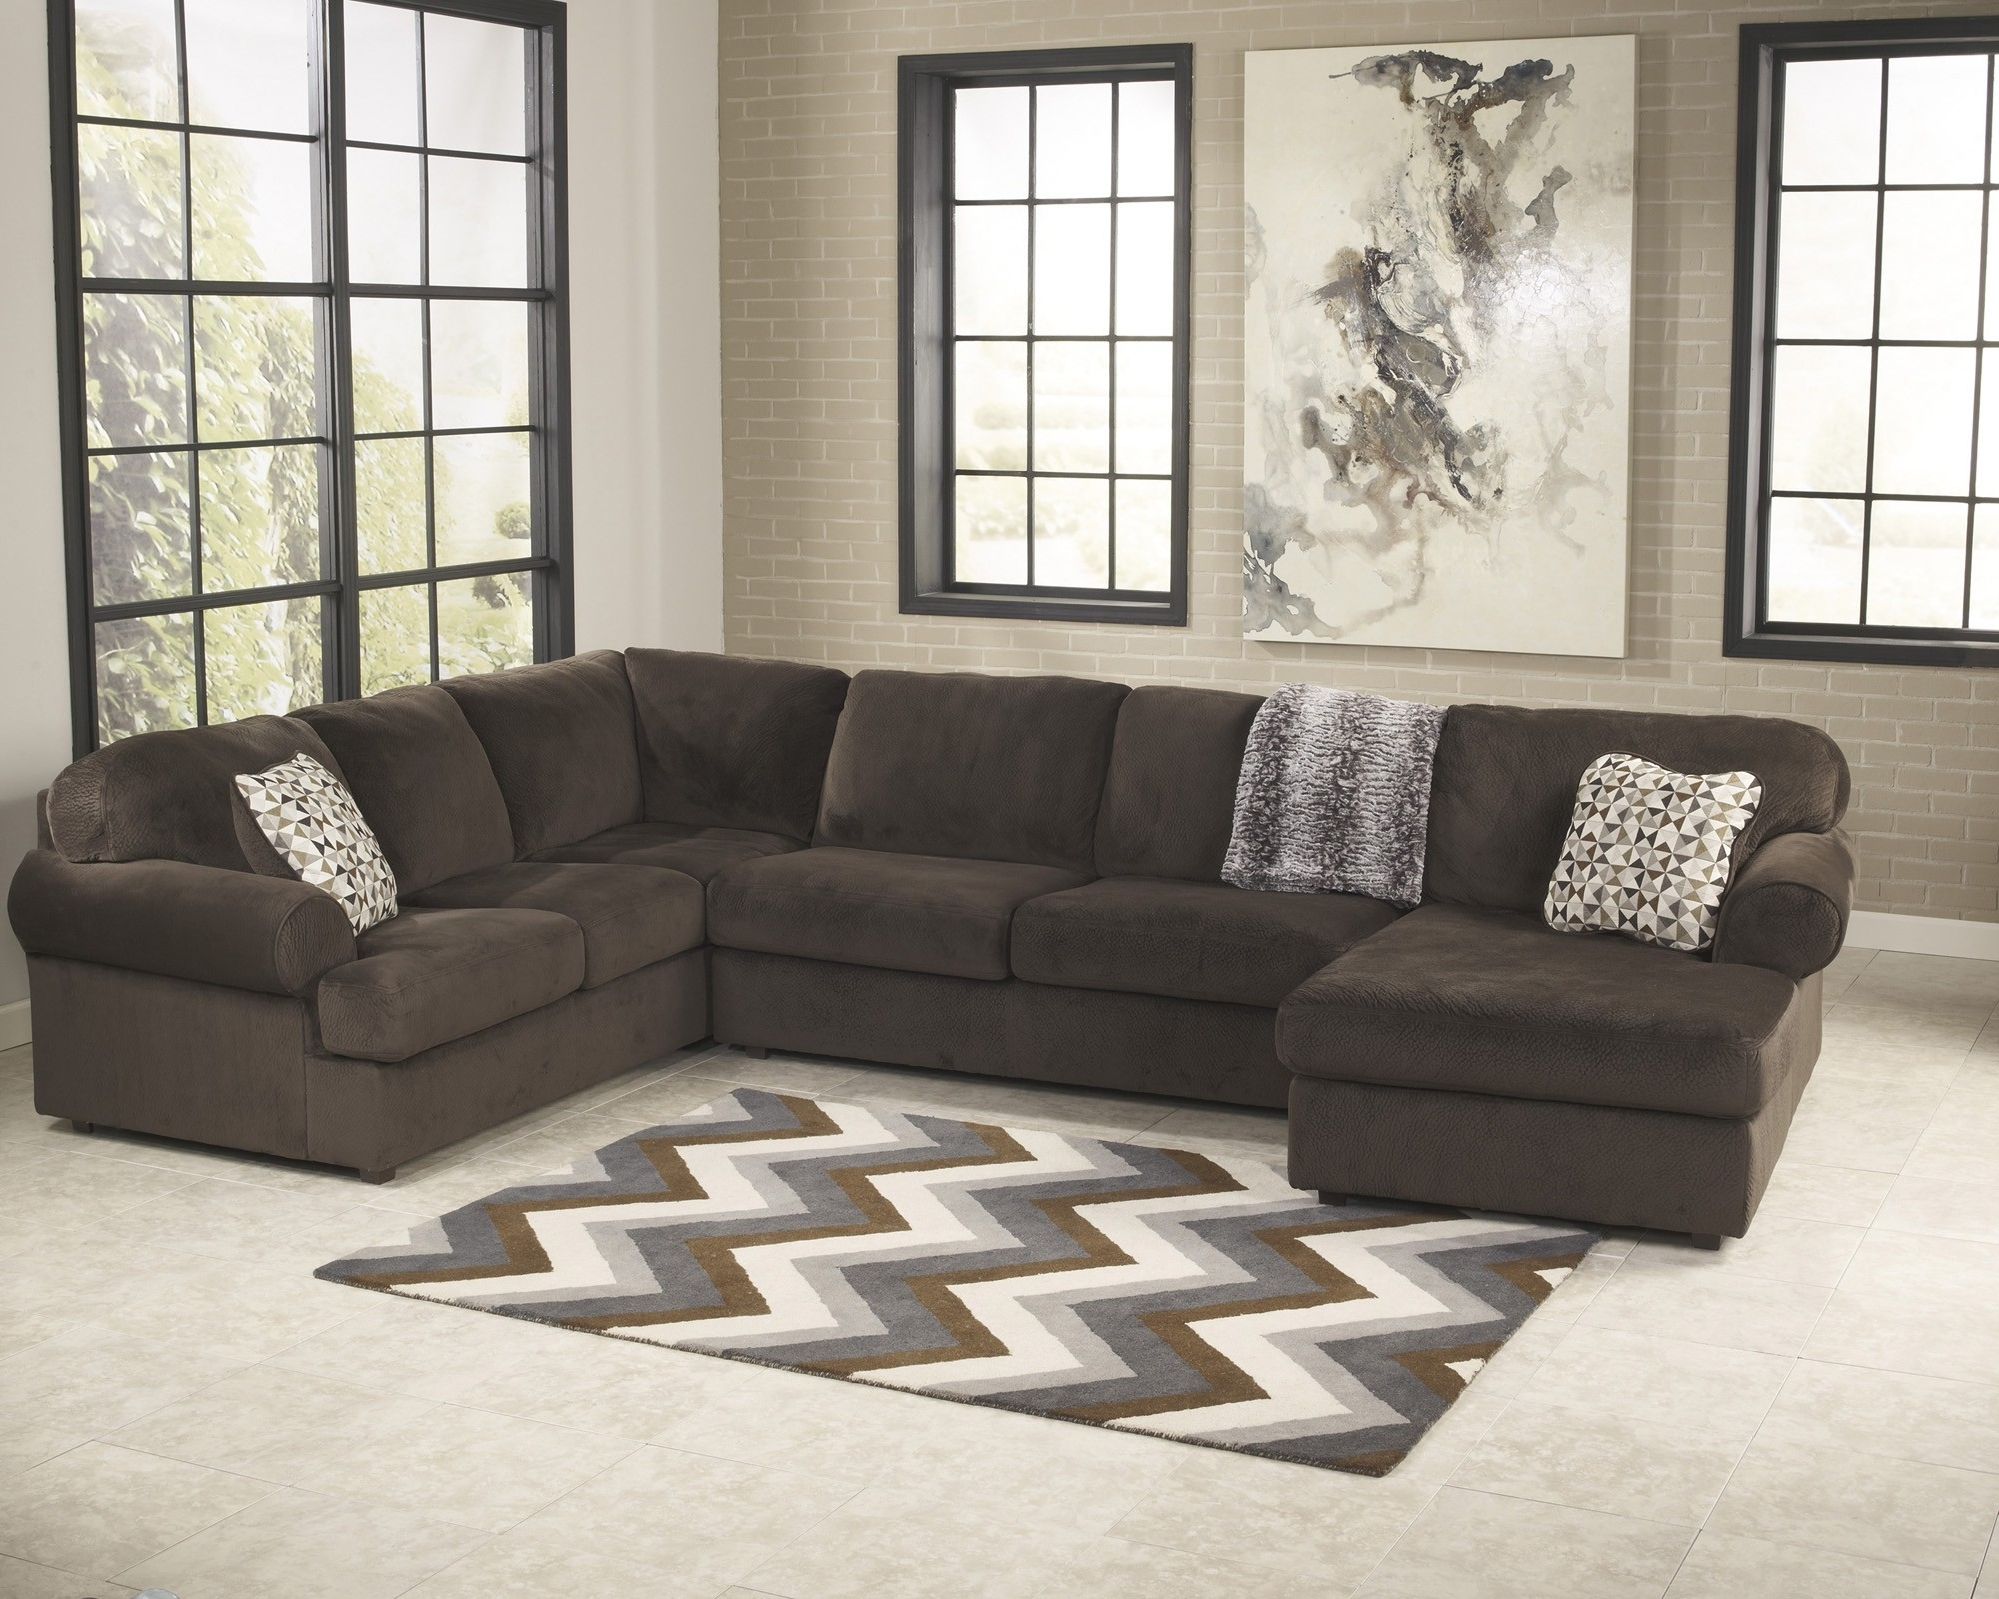 Latest Sectional Sofas In Greenville Sc For Chairs : Jessa Place Chocolate Piece Sectional Sofa For Sofas Sale (View 6 of 20)